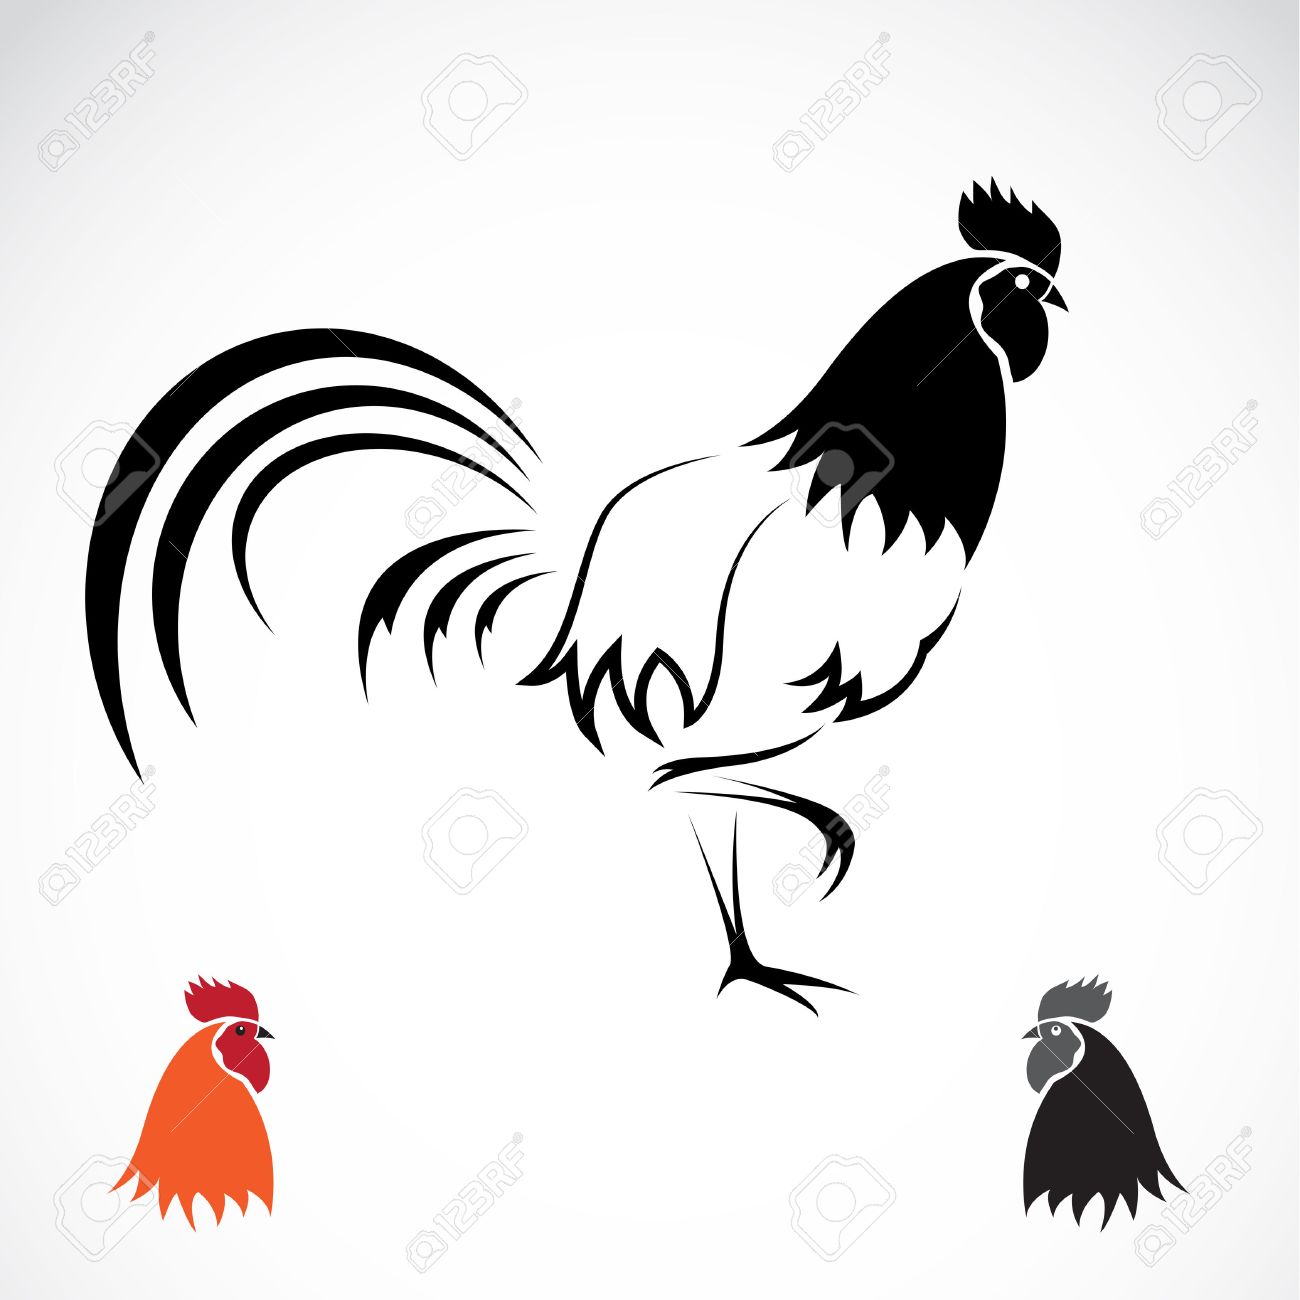 cockerel images u0026 stock pictures royalty free cockerel photos and